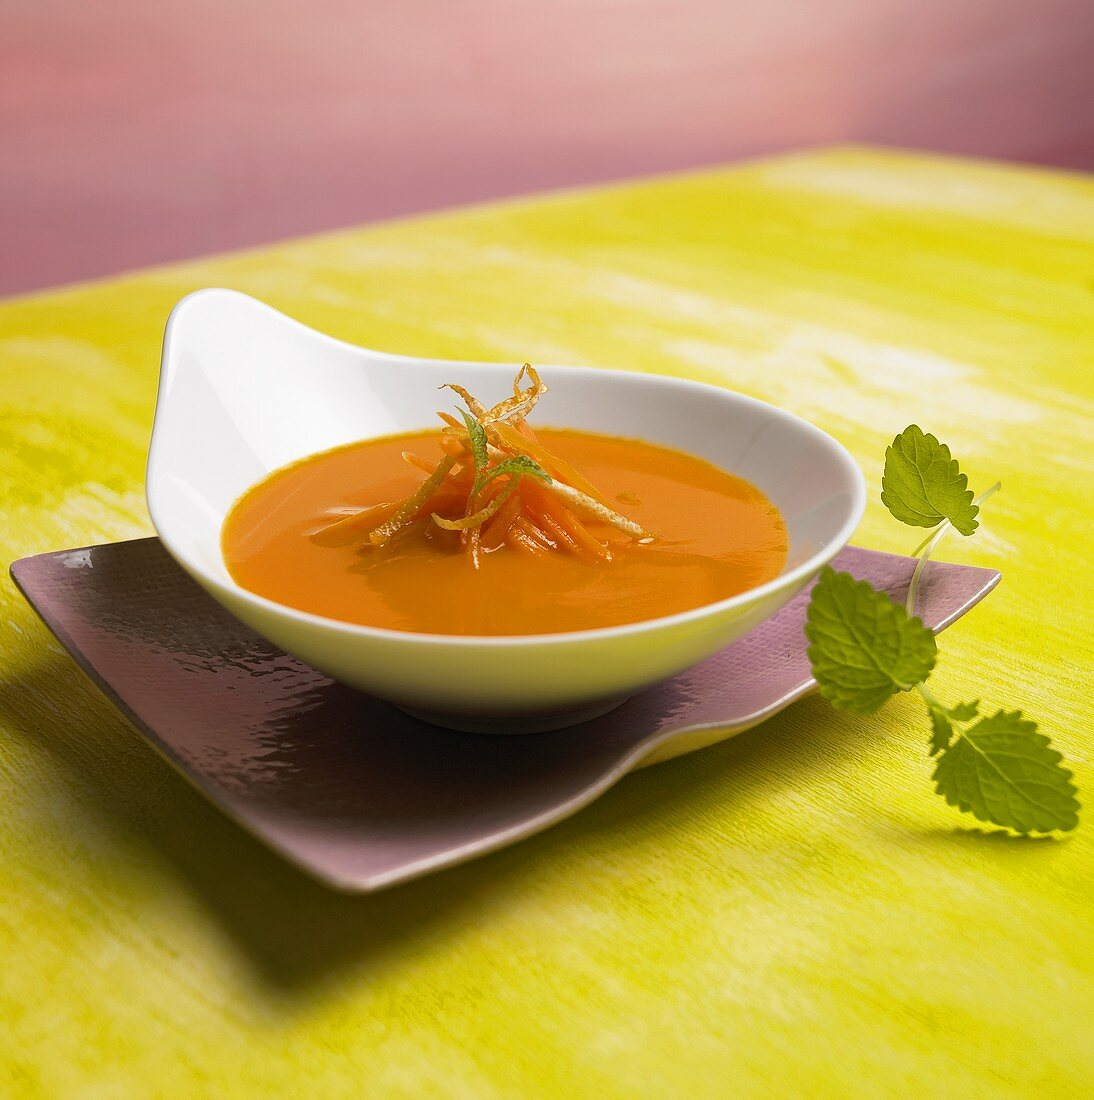 Carrot and lime soup in a soup plate